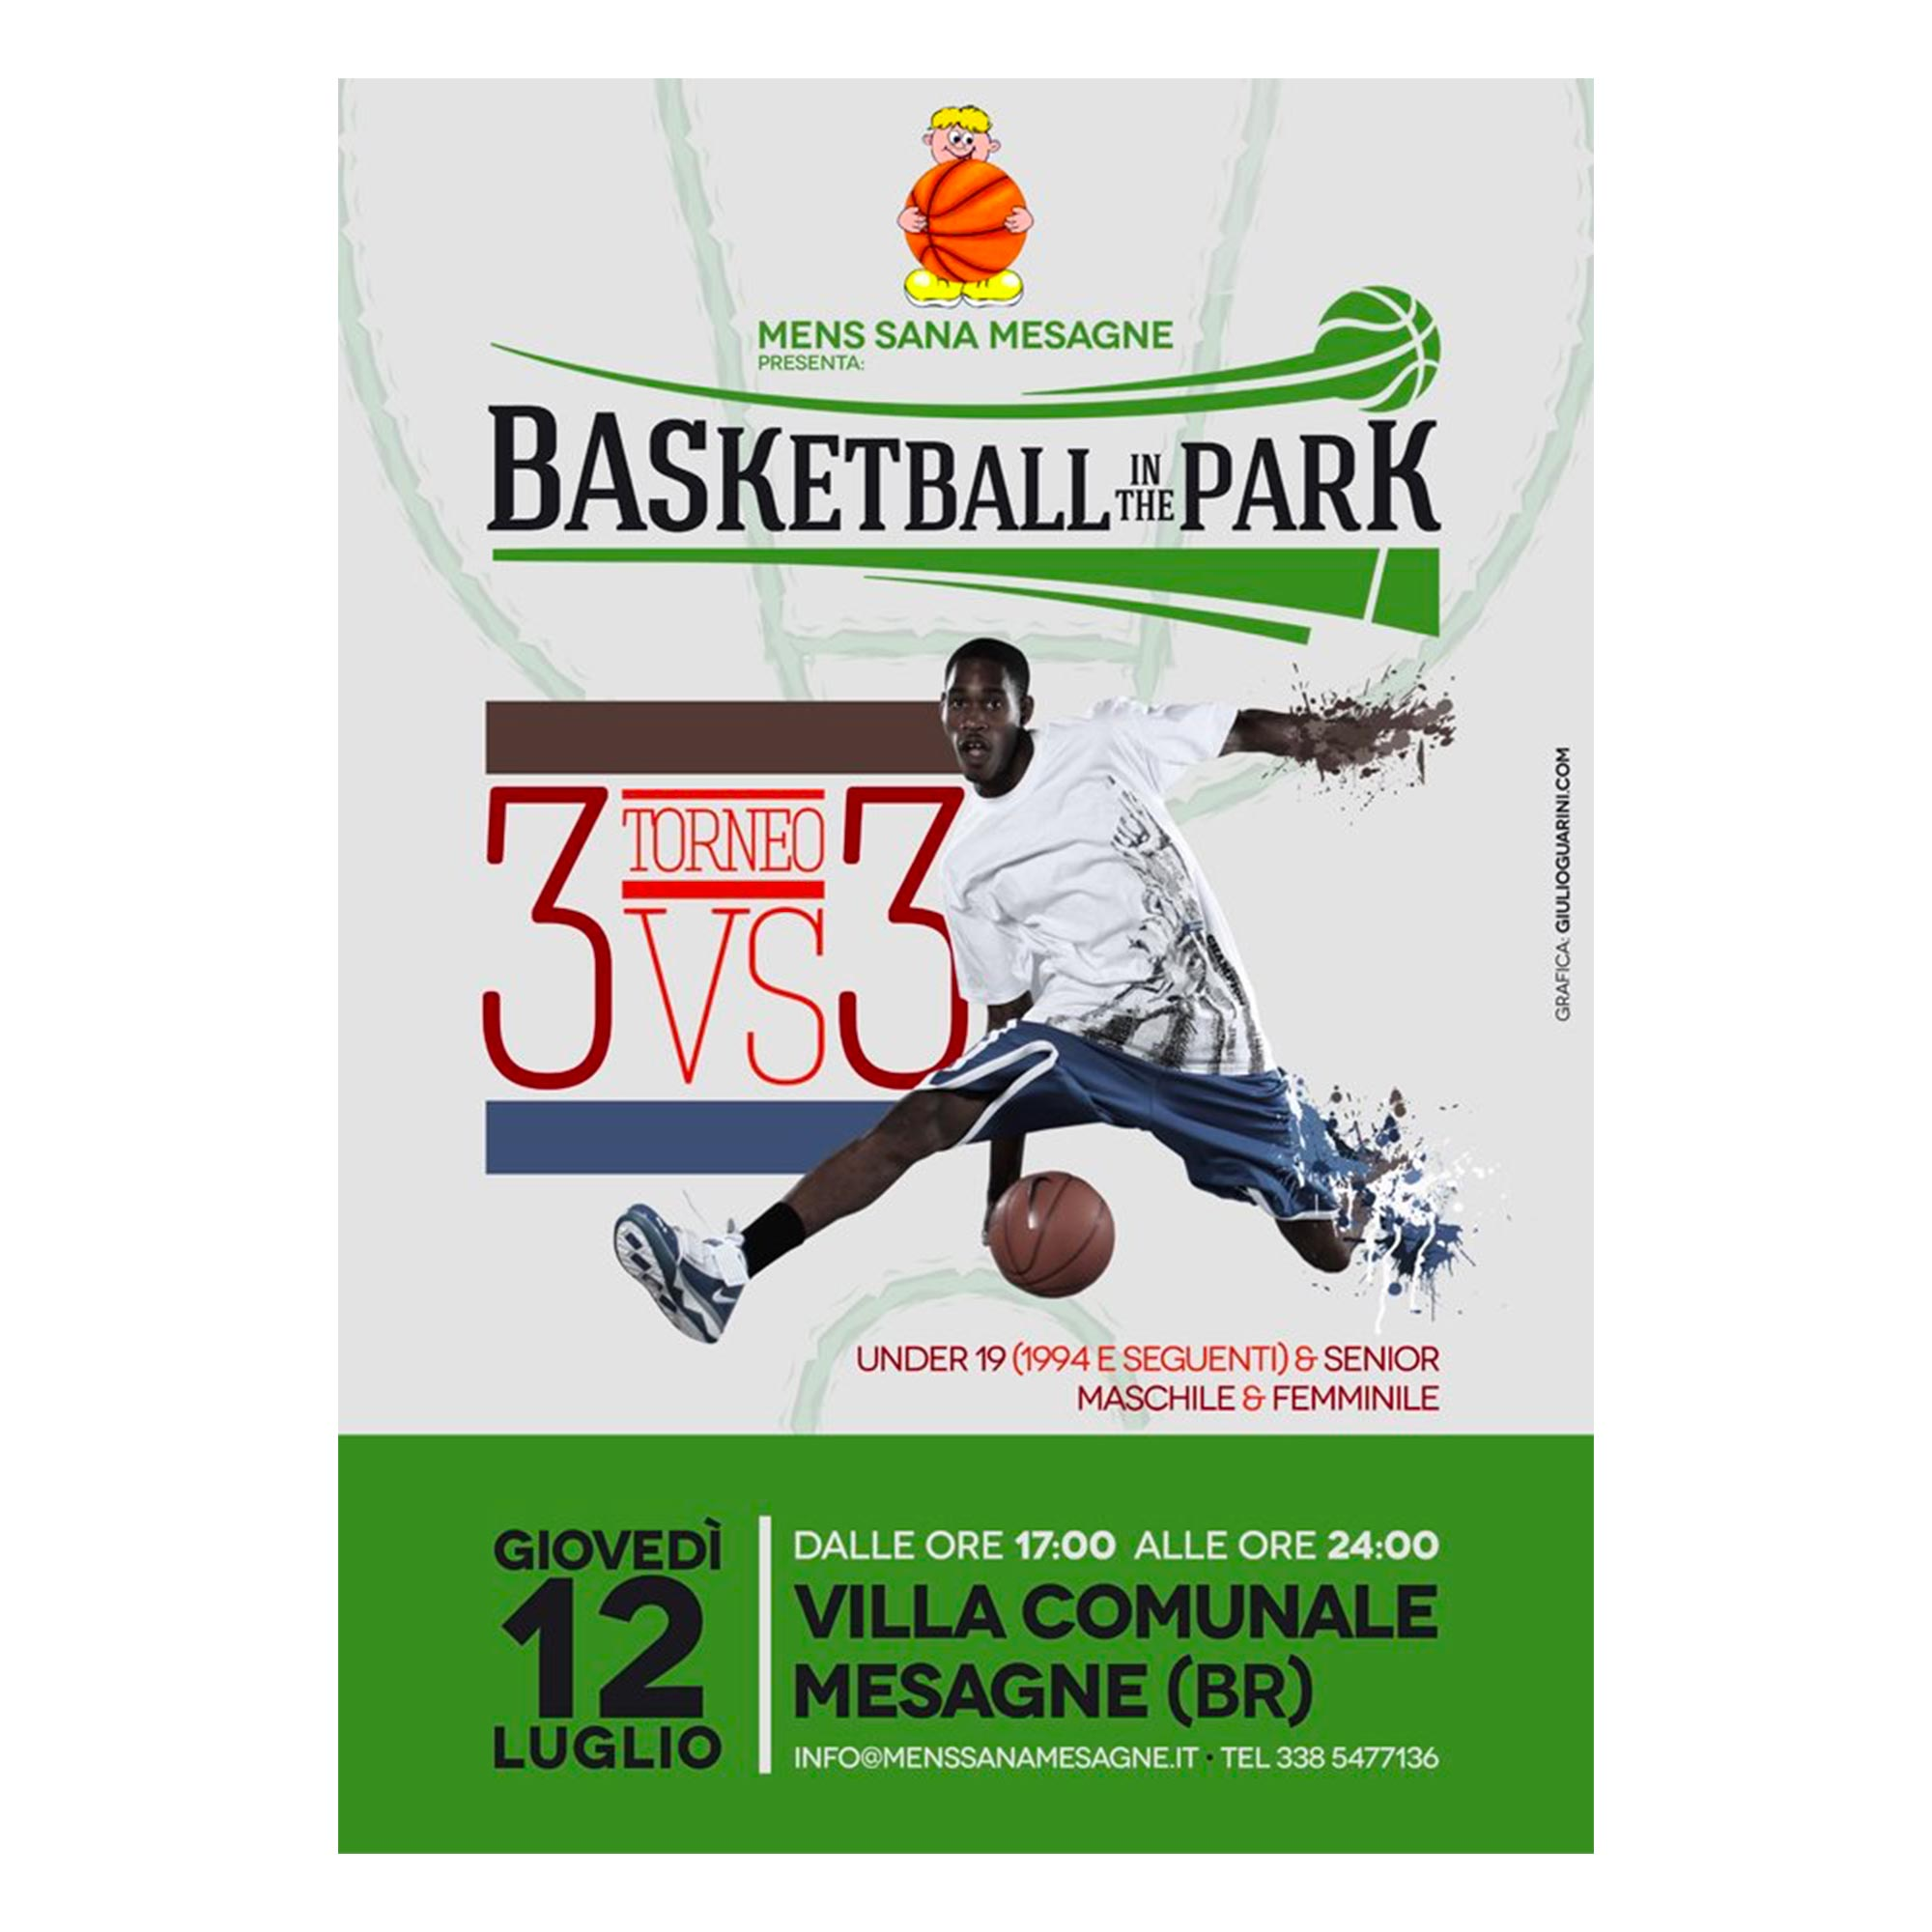 basketball-in-the-park